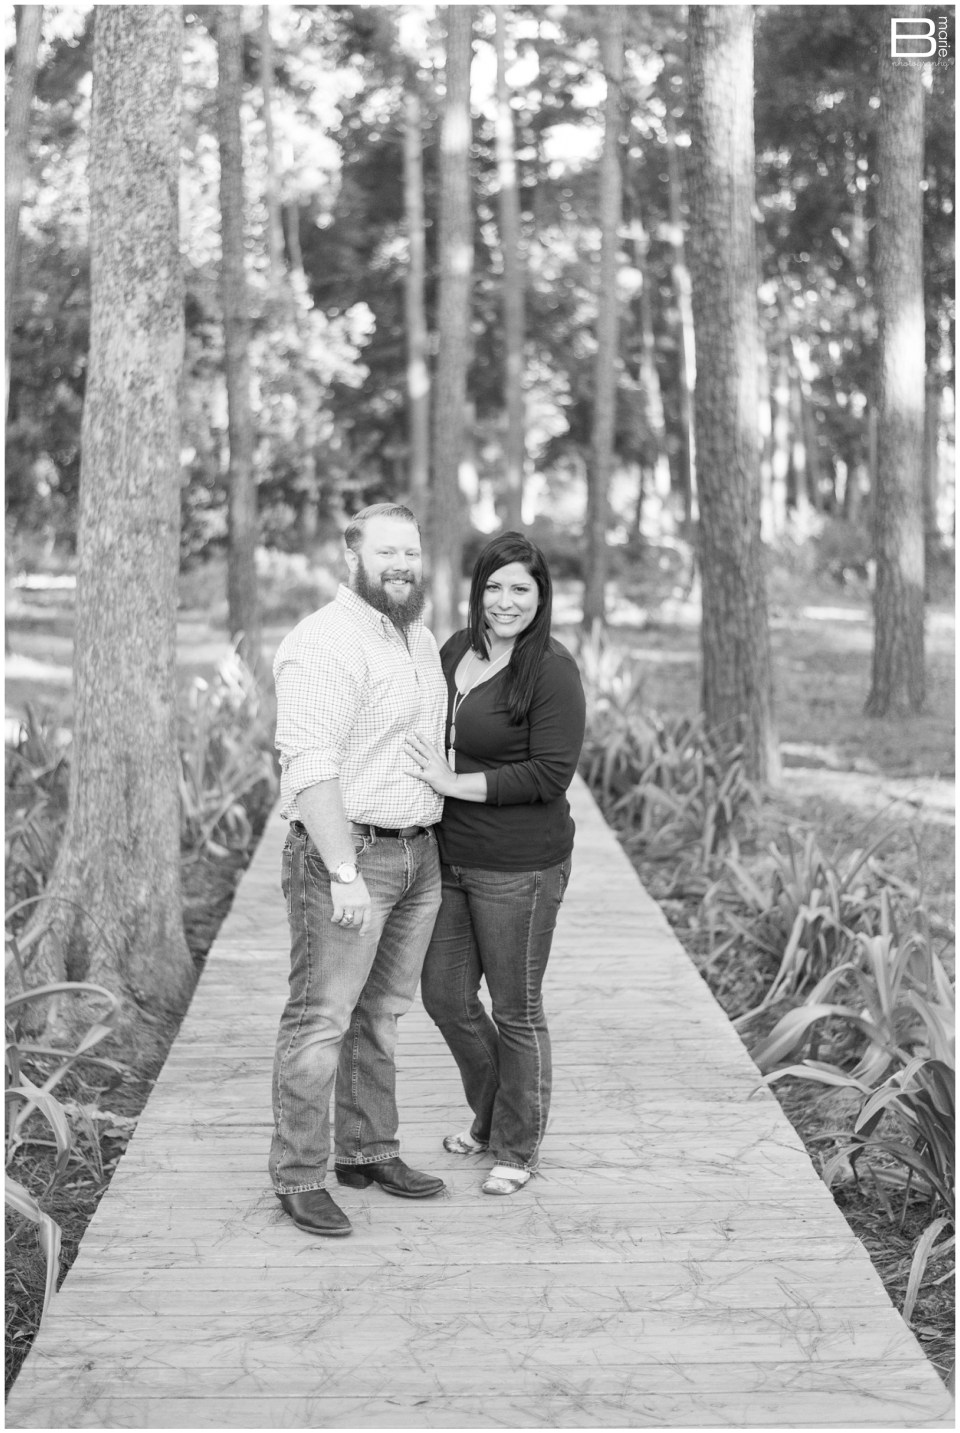 Kingwood photographer morning engagement session in arboretum & downtown Nacogdoches